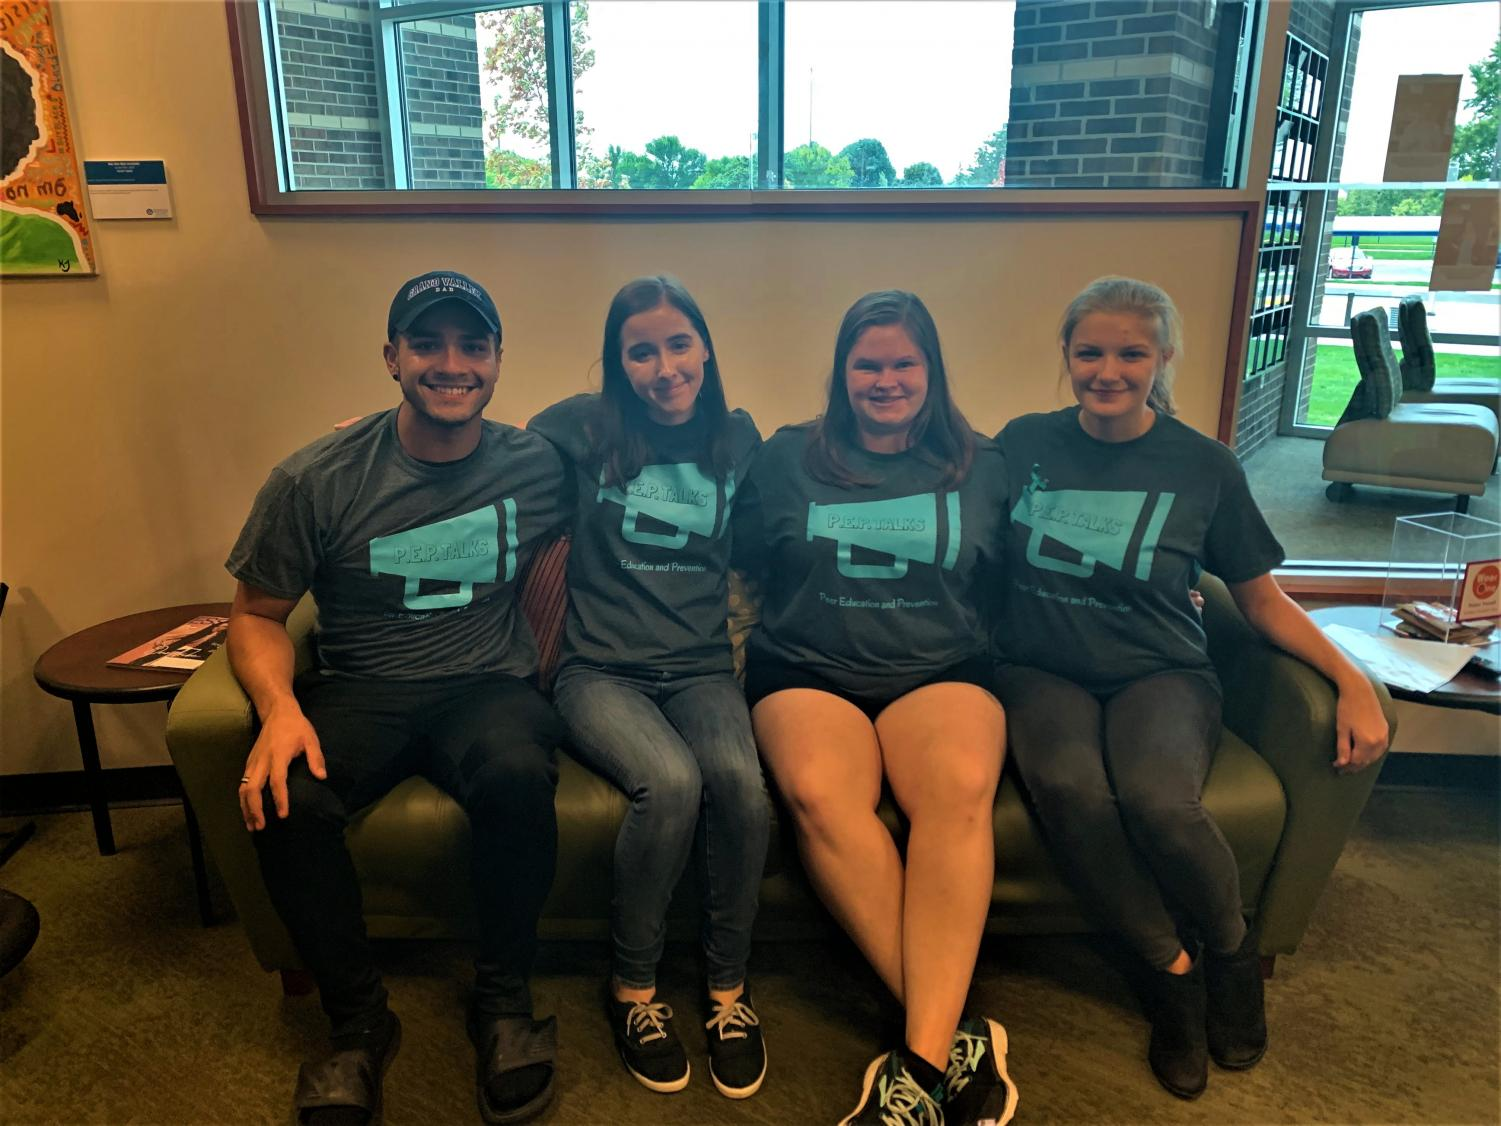 Four of Grand Valley's Peer Educators. From left to right: Lansing Sanchez-Castillo, Isabella Haskin, Emily Uhlarik, and Emma Bruns. COURTESY \ Caitlyn Cubberly